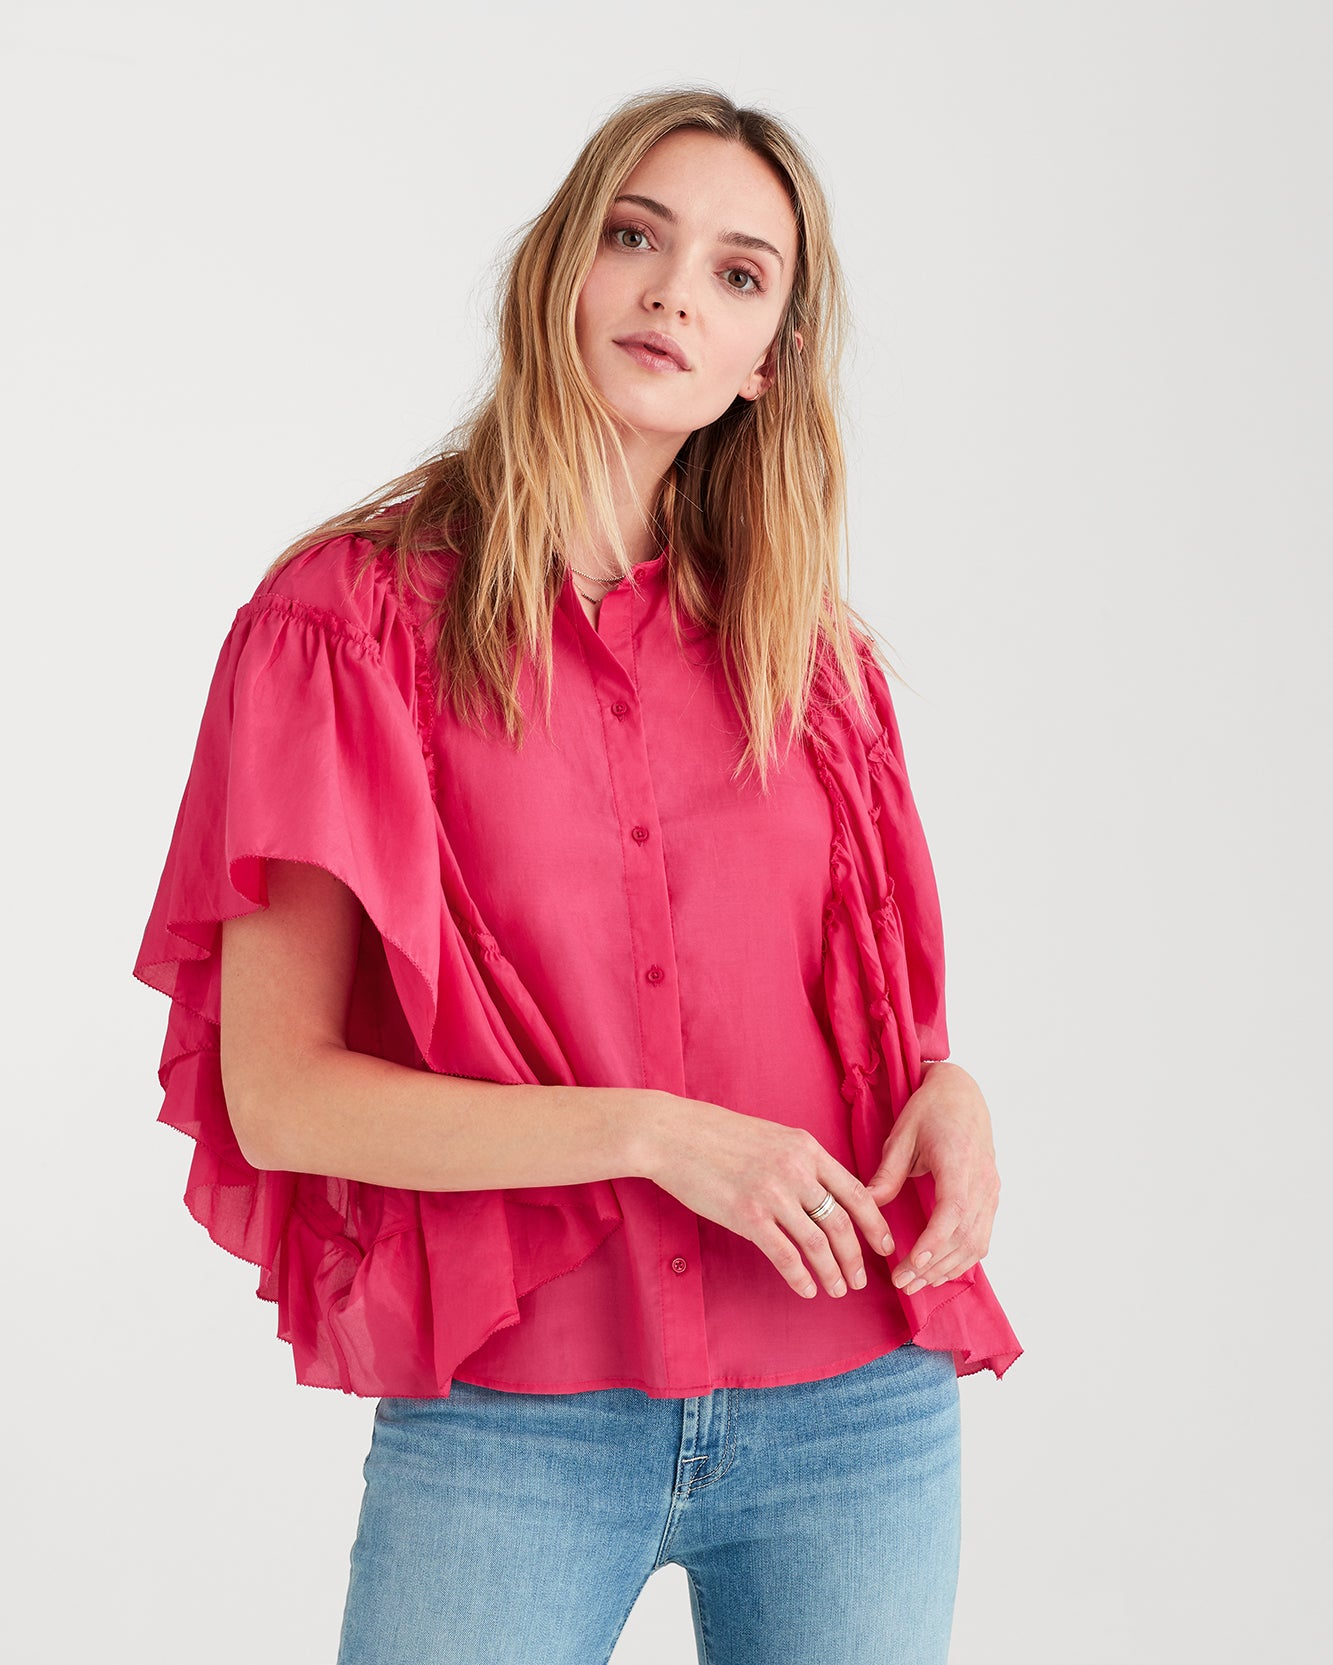 Image of Butterfly Sleeve Top in Hot Pink